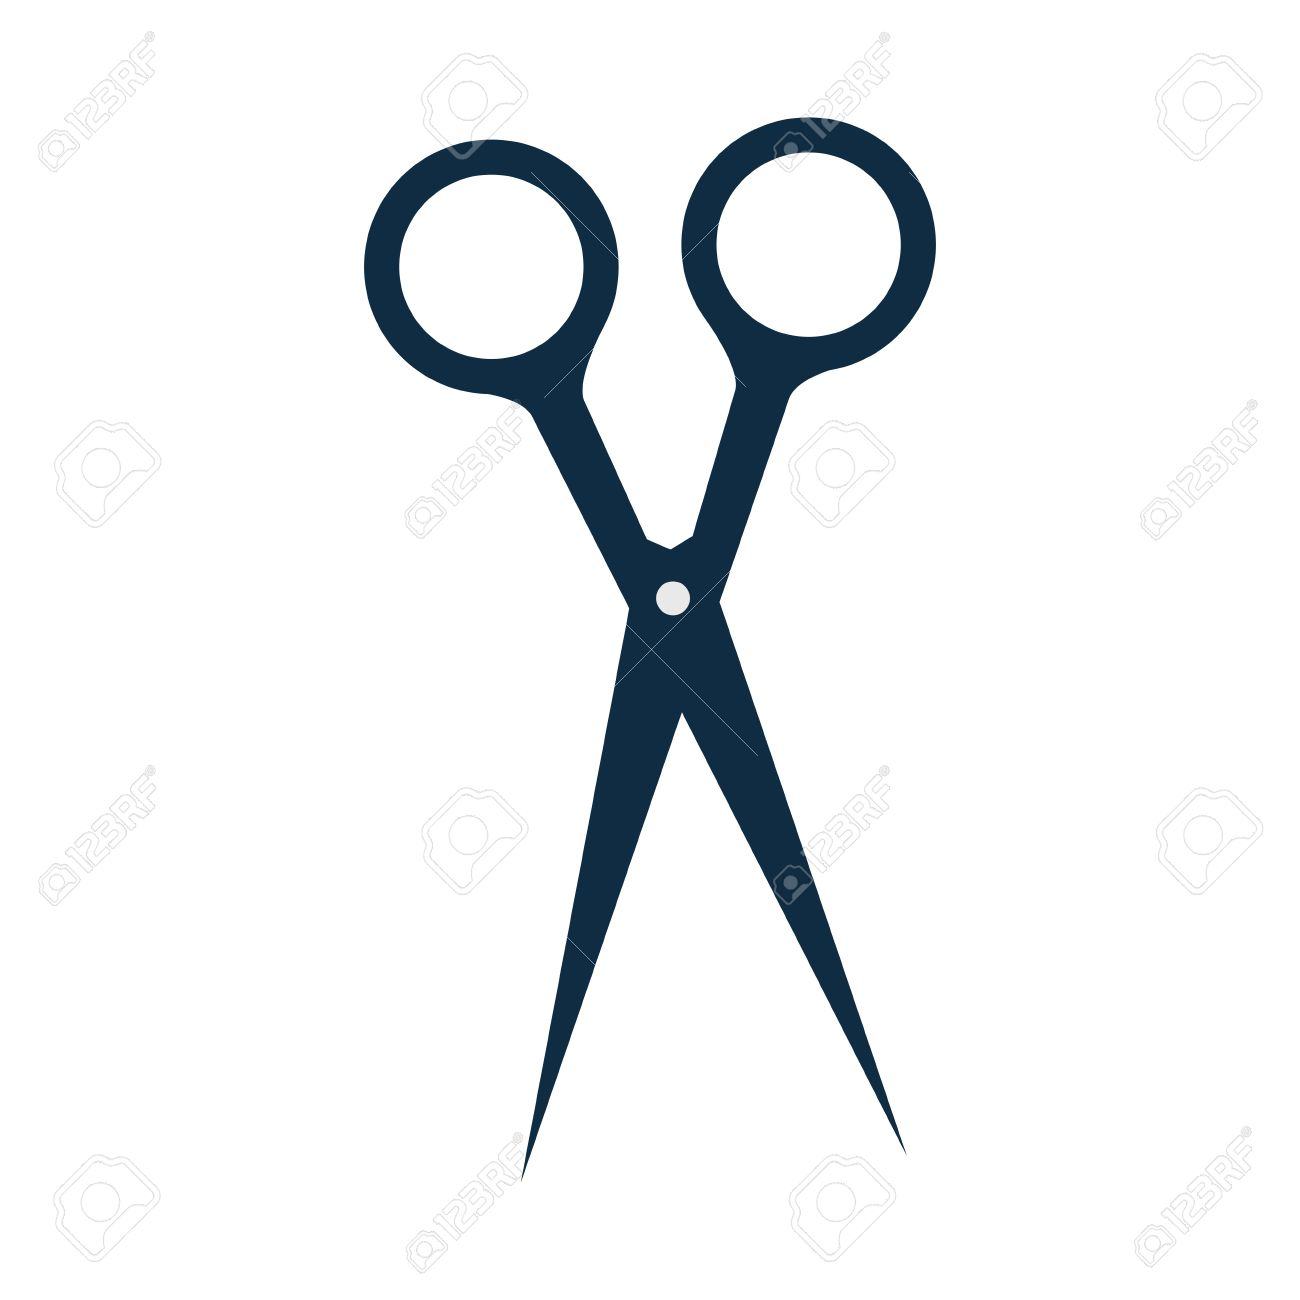 hair cutting scissors. blades and handles. silhouette. vector..